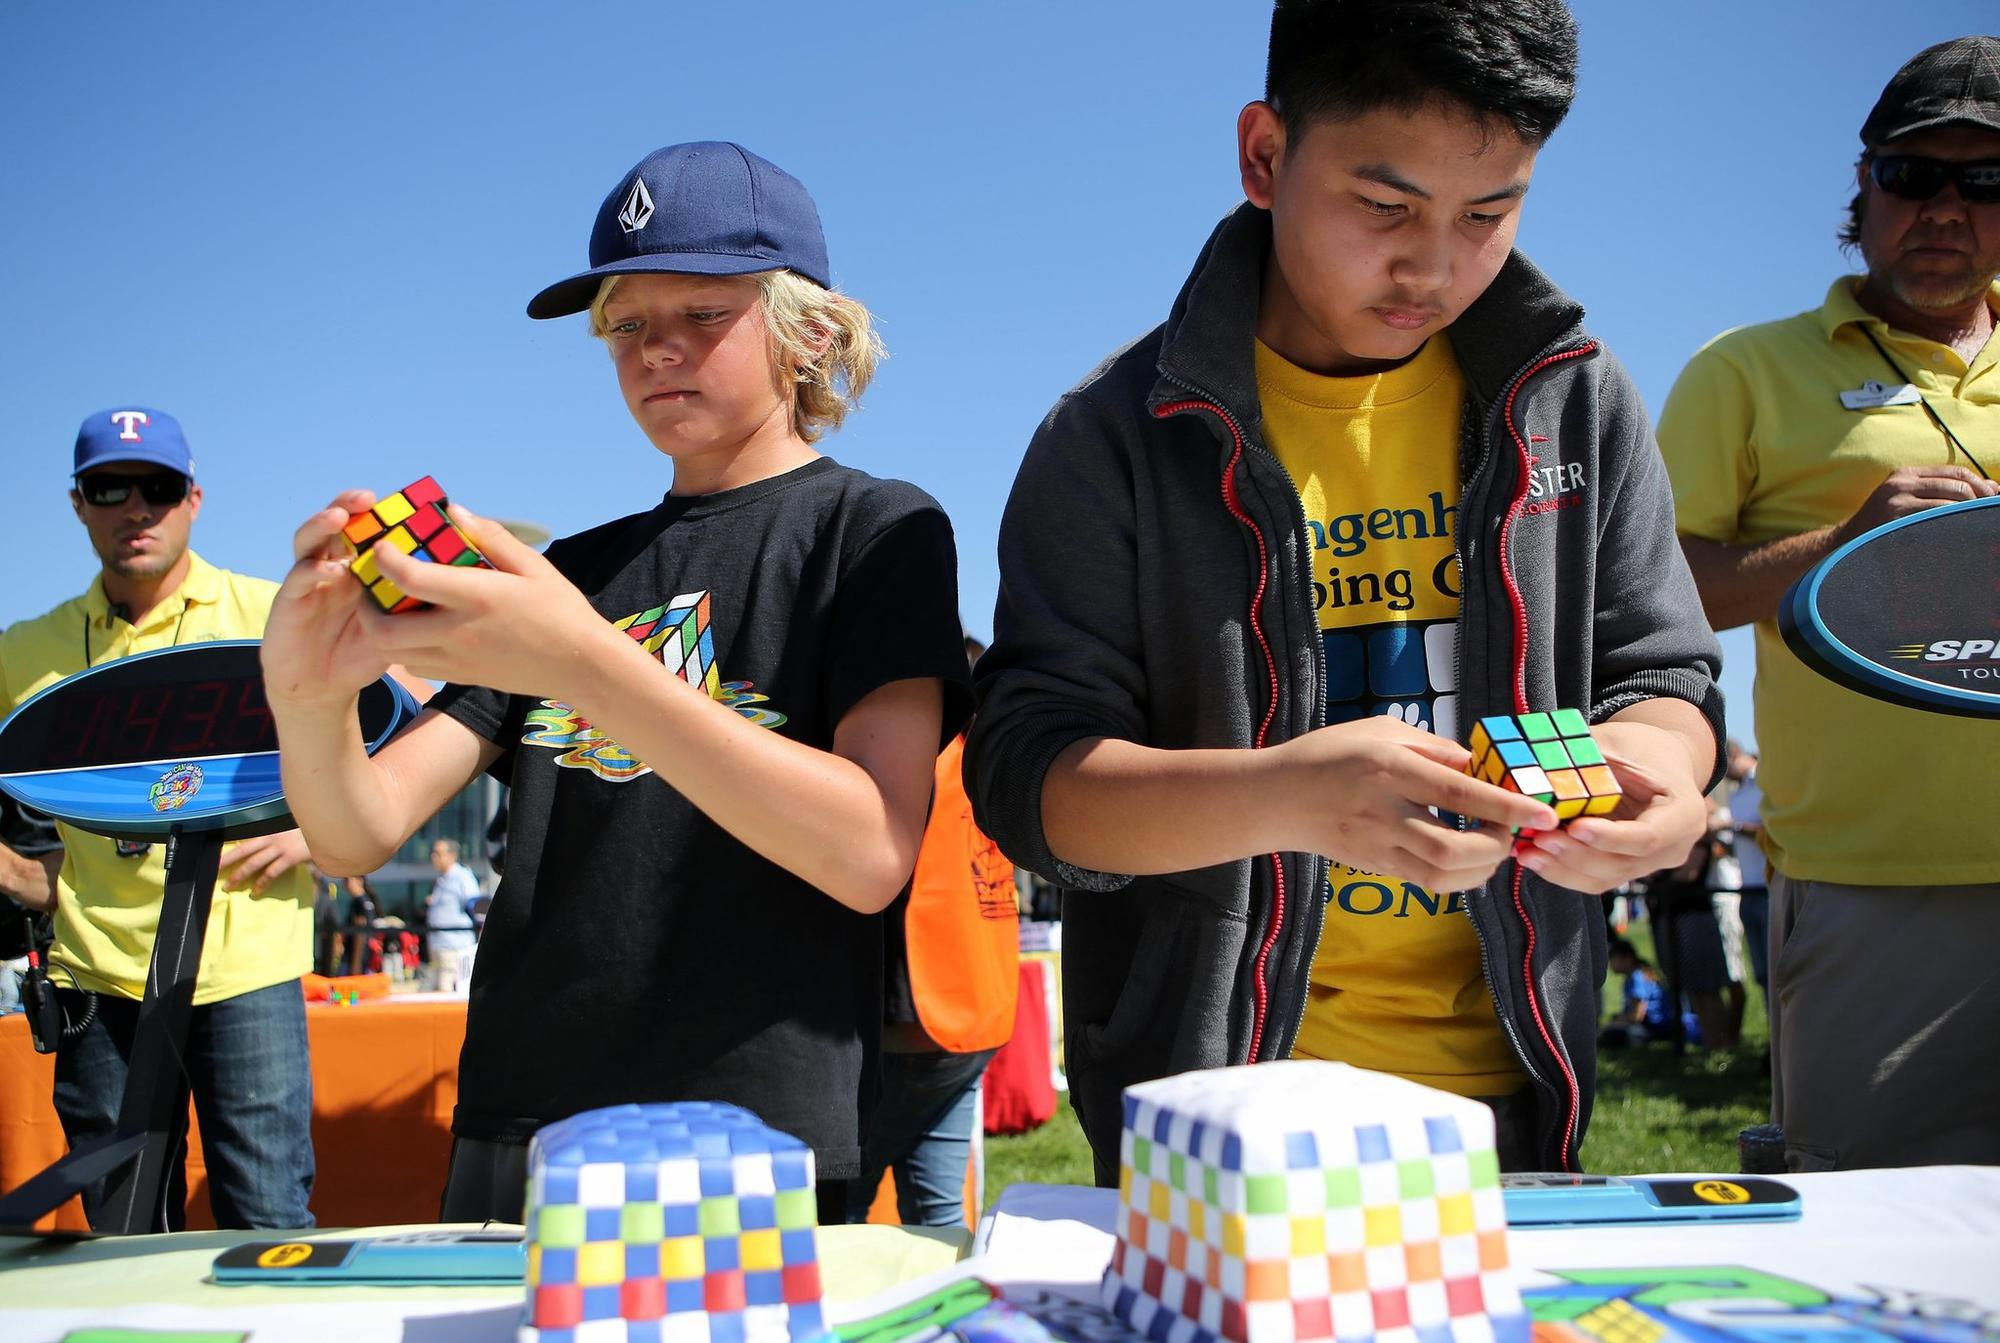 Alex Branch and Josh Pasco concentrate as they take part in a Rubik's Cube competition at Super STEM Saturday at California State University San Marcos.